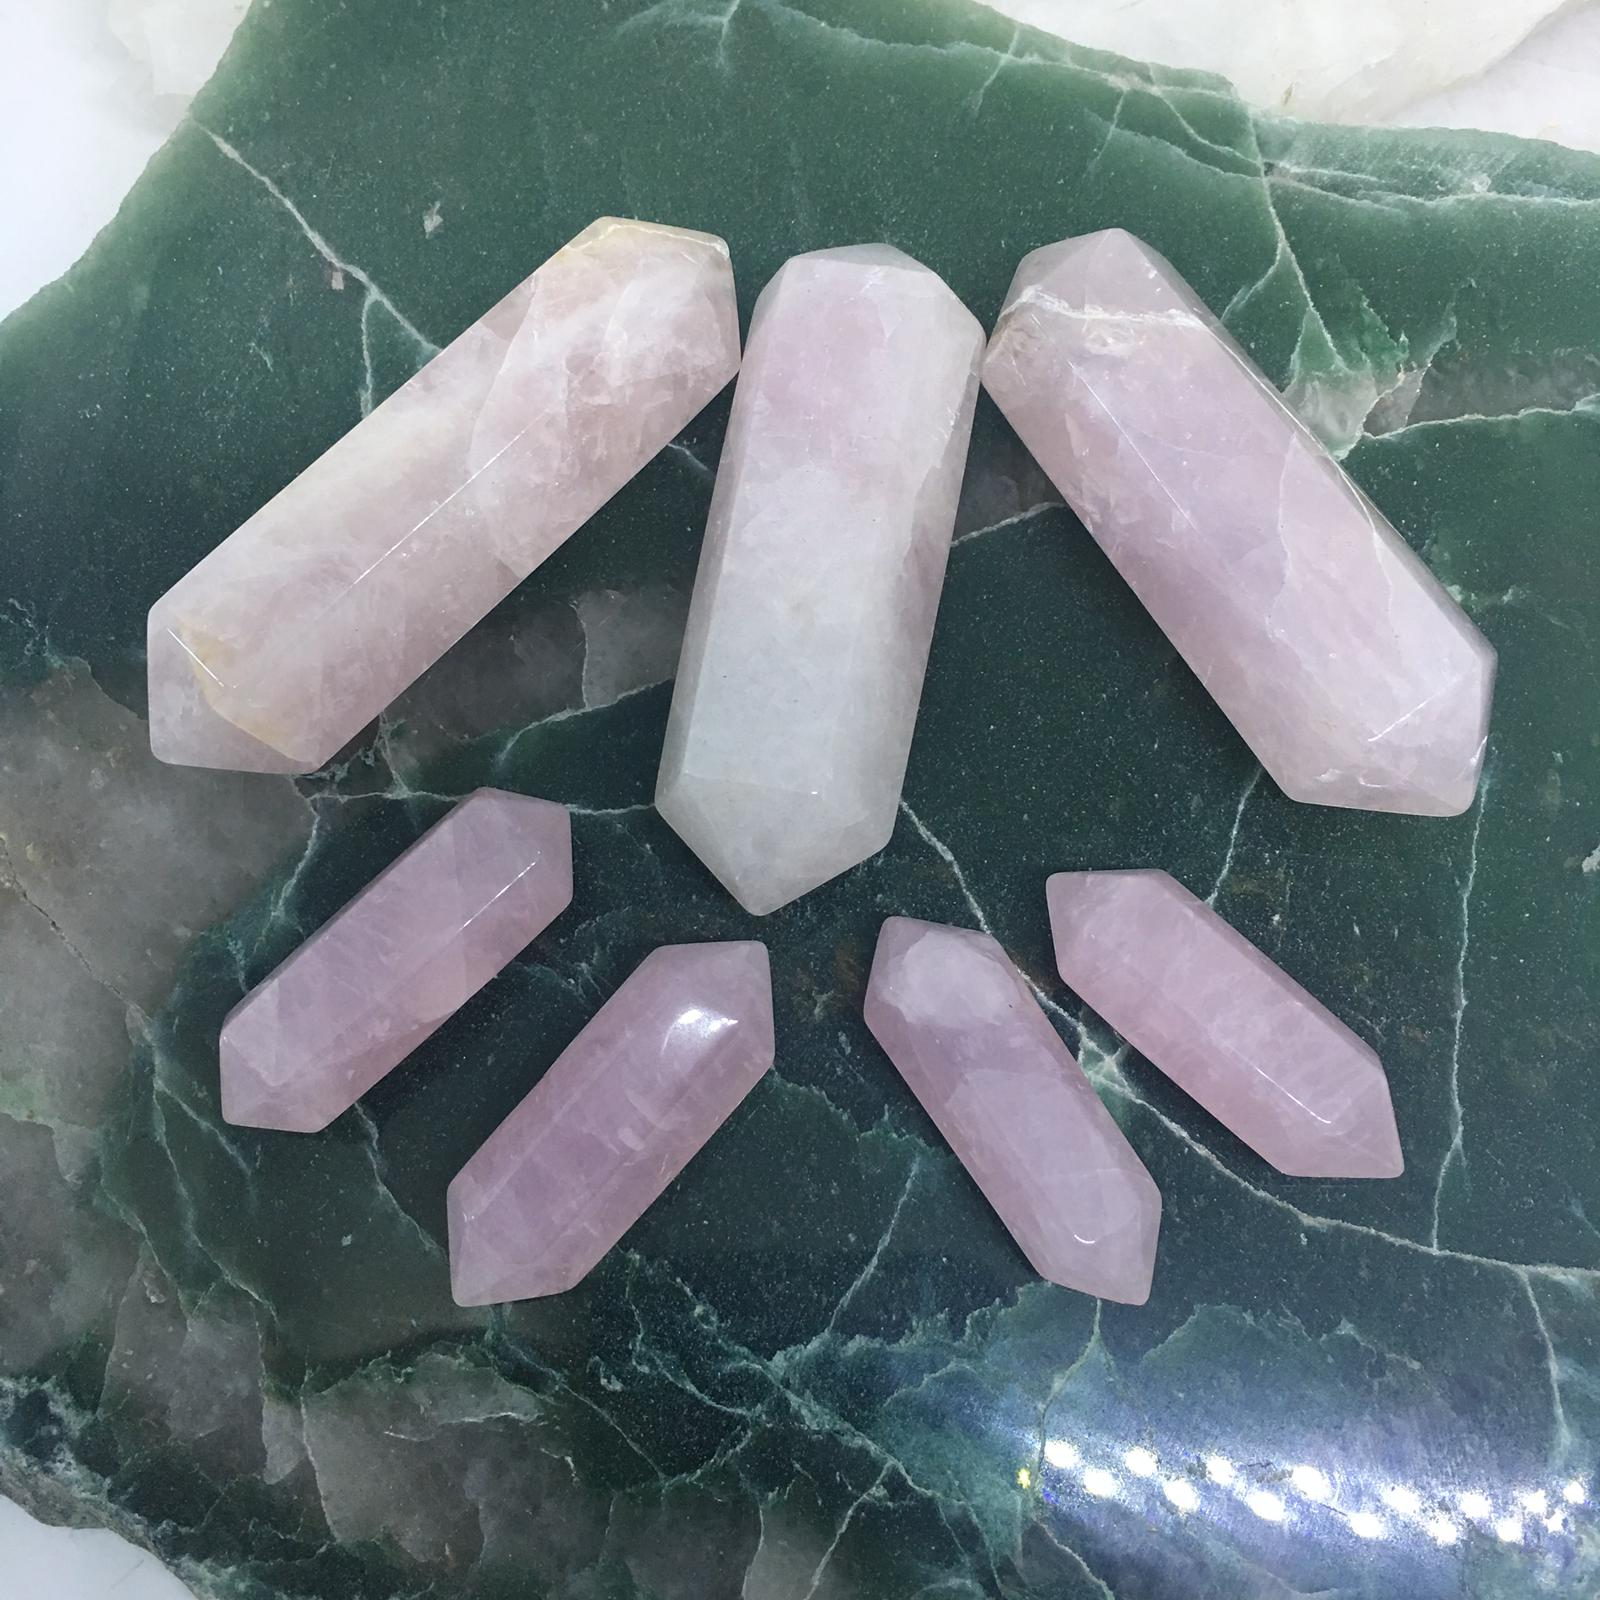 Stones from Uruguay - Rose Quartz Double Terminated Crystal Polished Point for Meditation or Healing